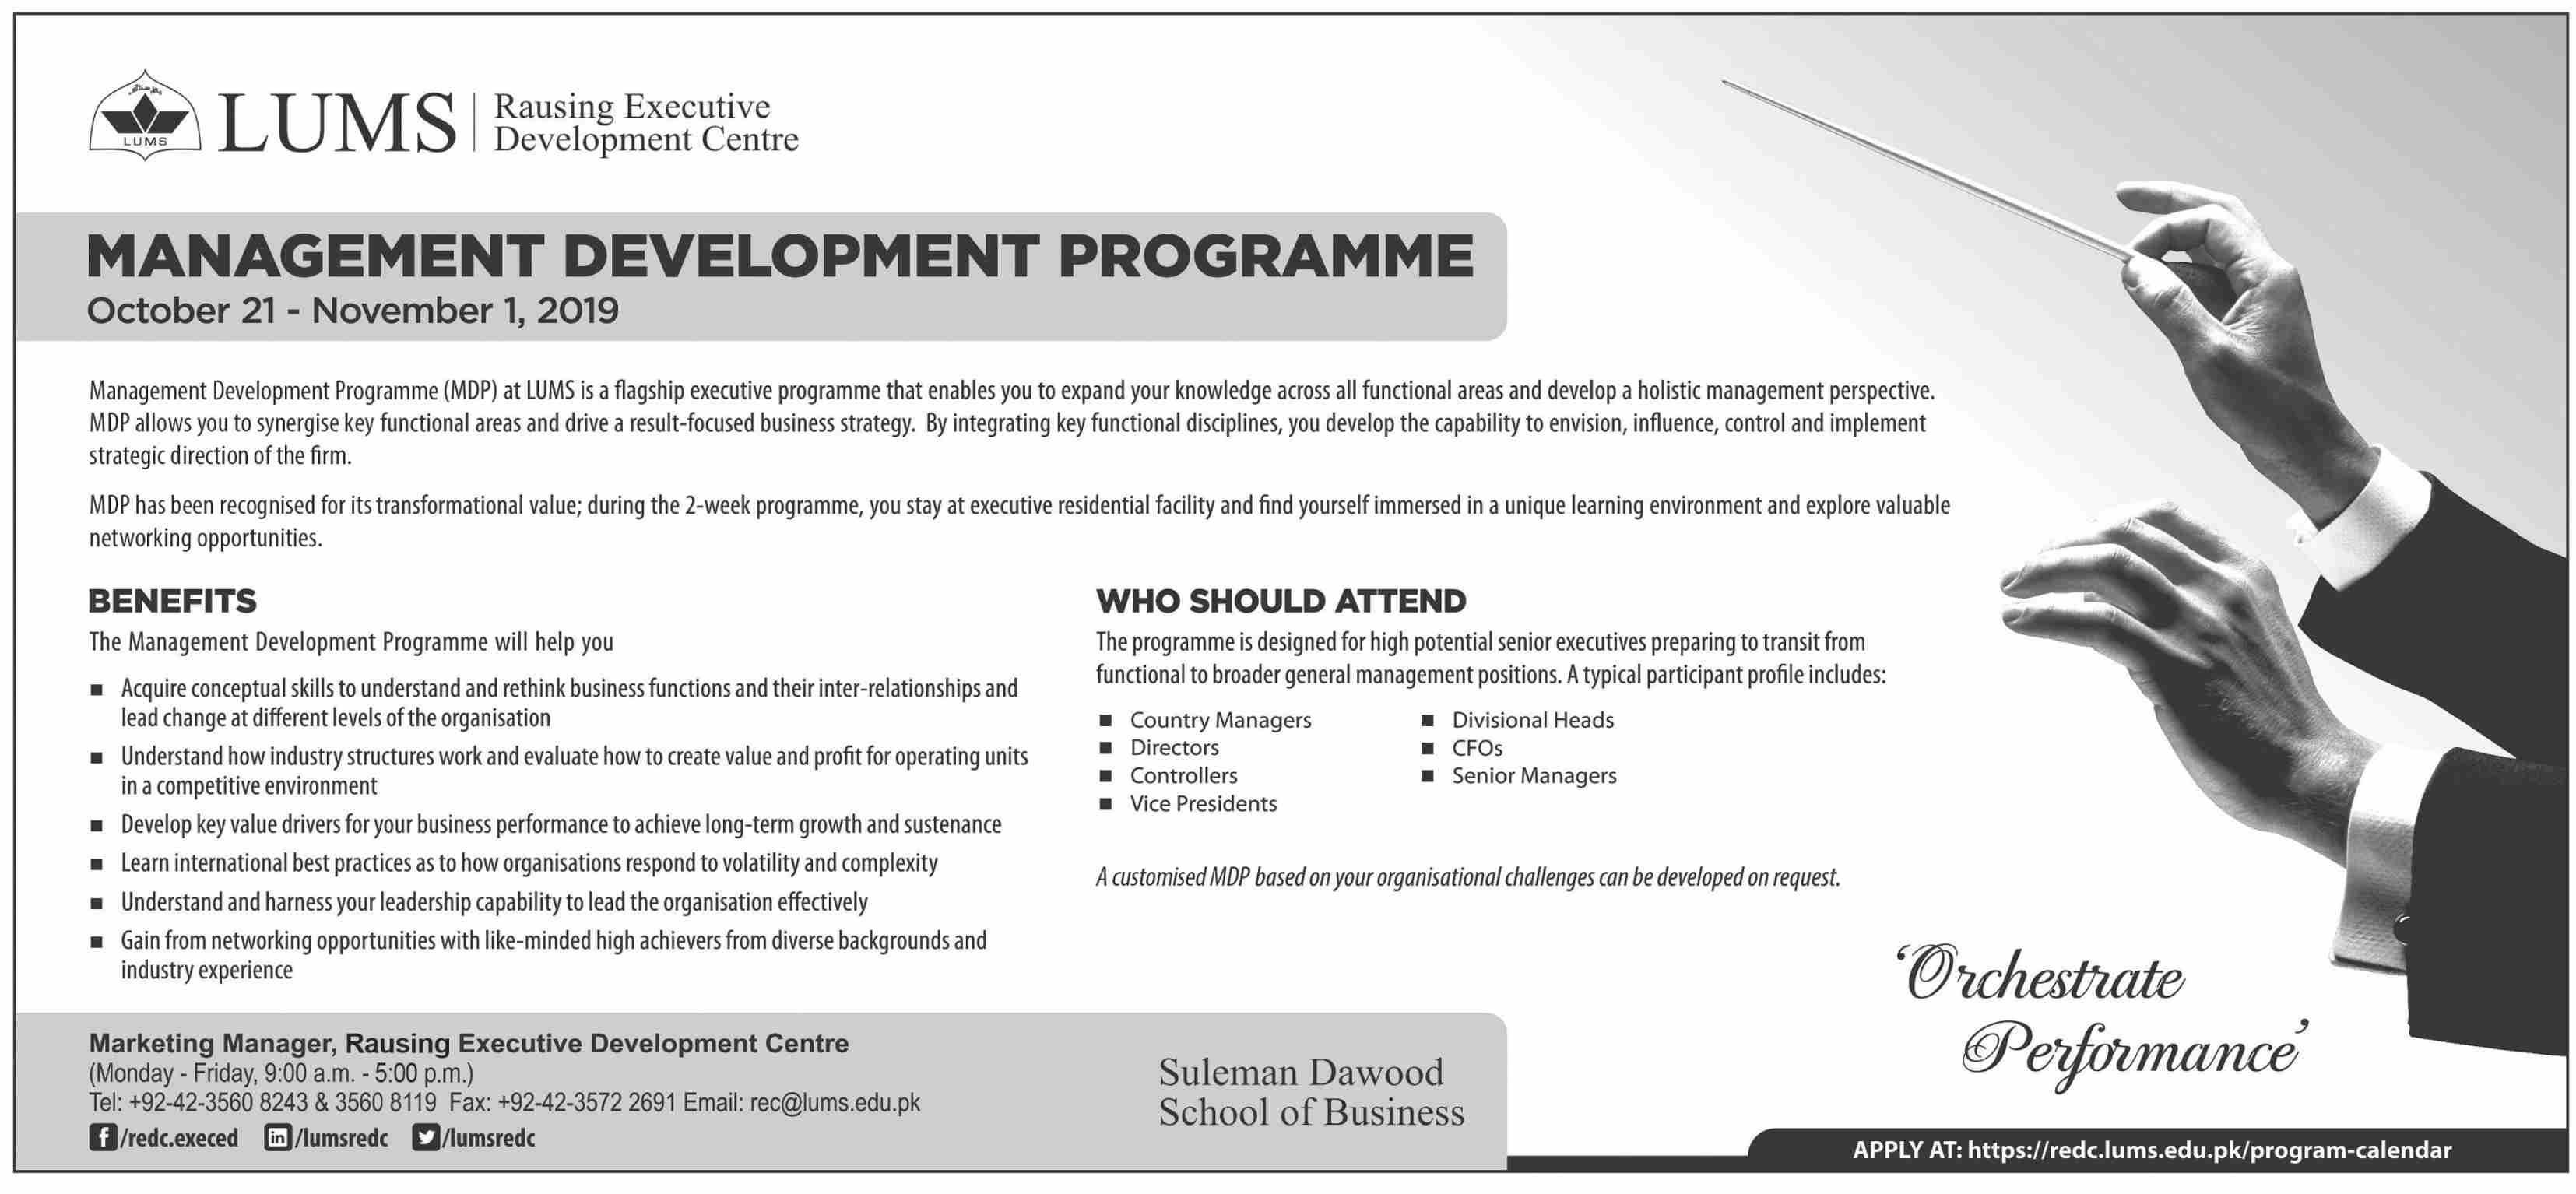 LUMS Management Development Program 2019